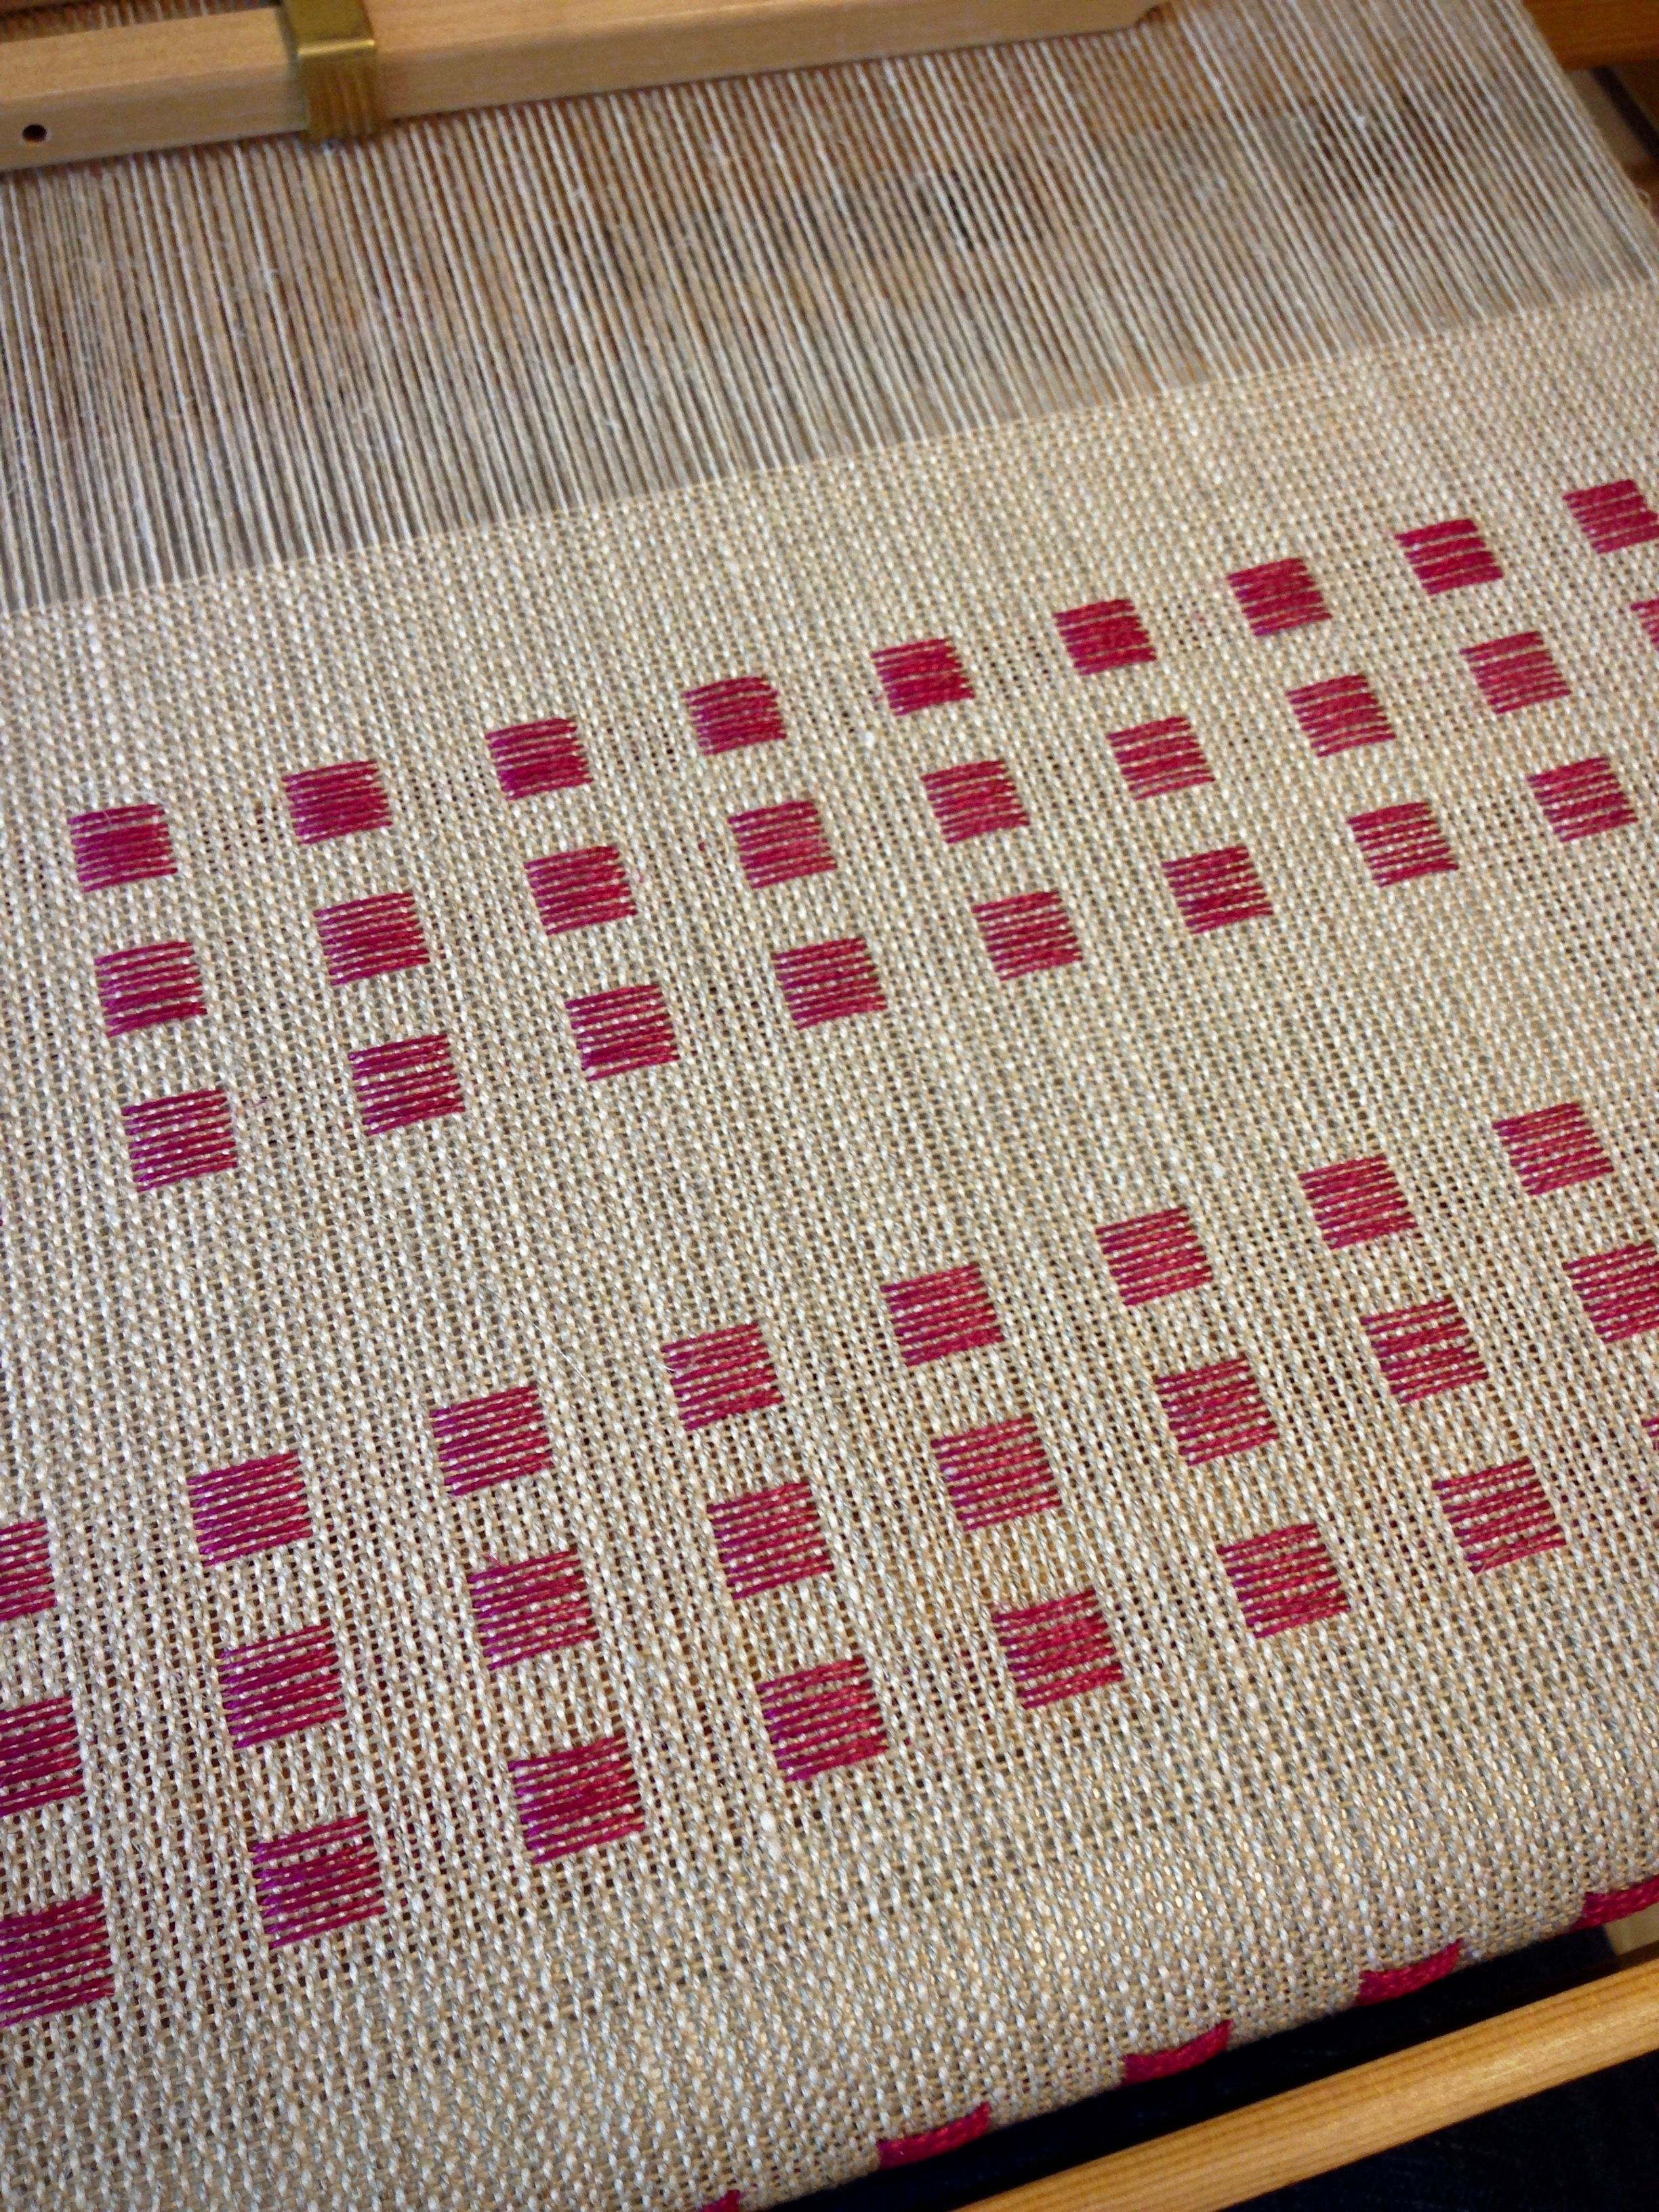 Loom Weaving Patterns Unique Design Inspiration